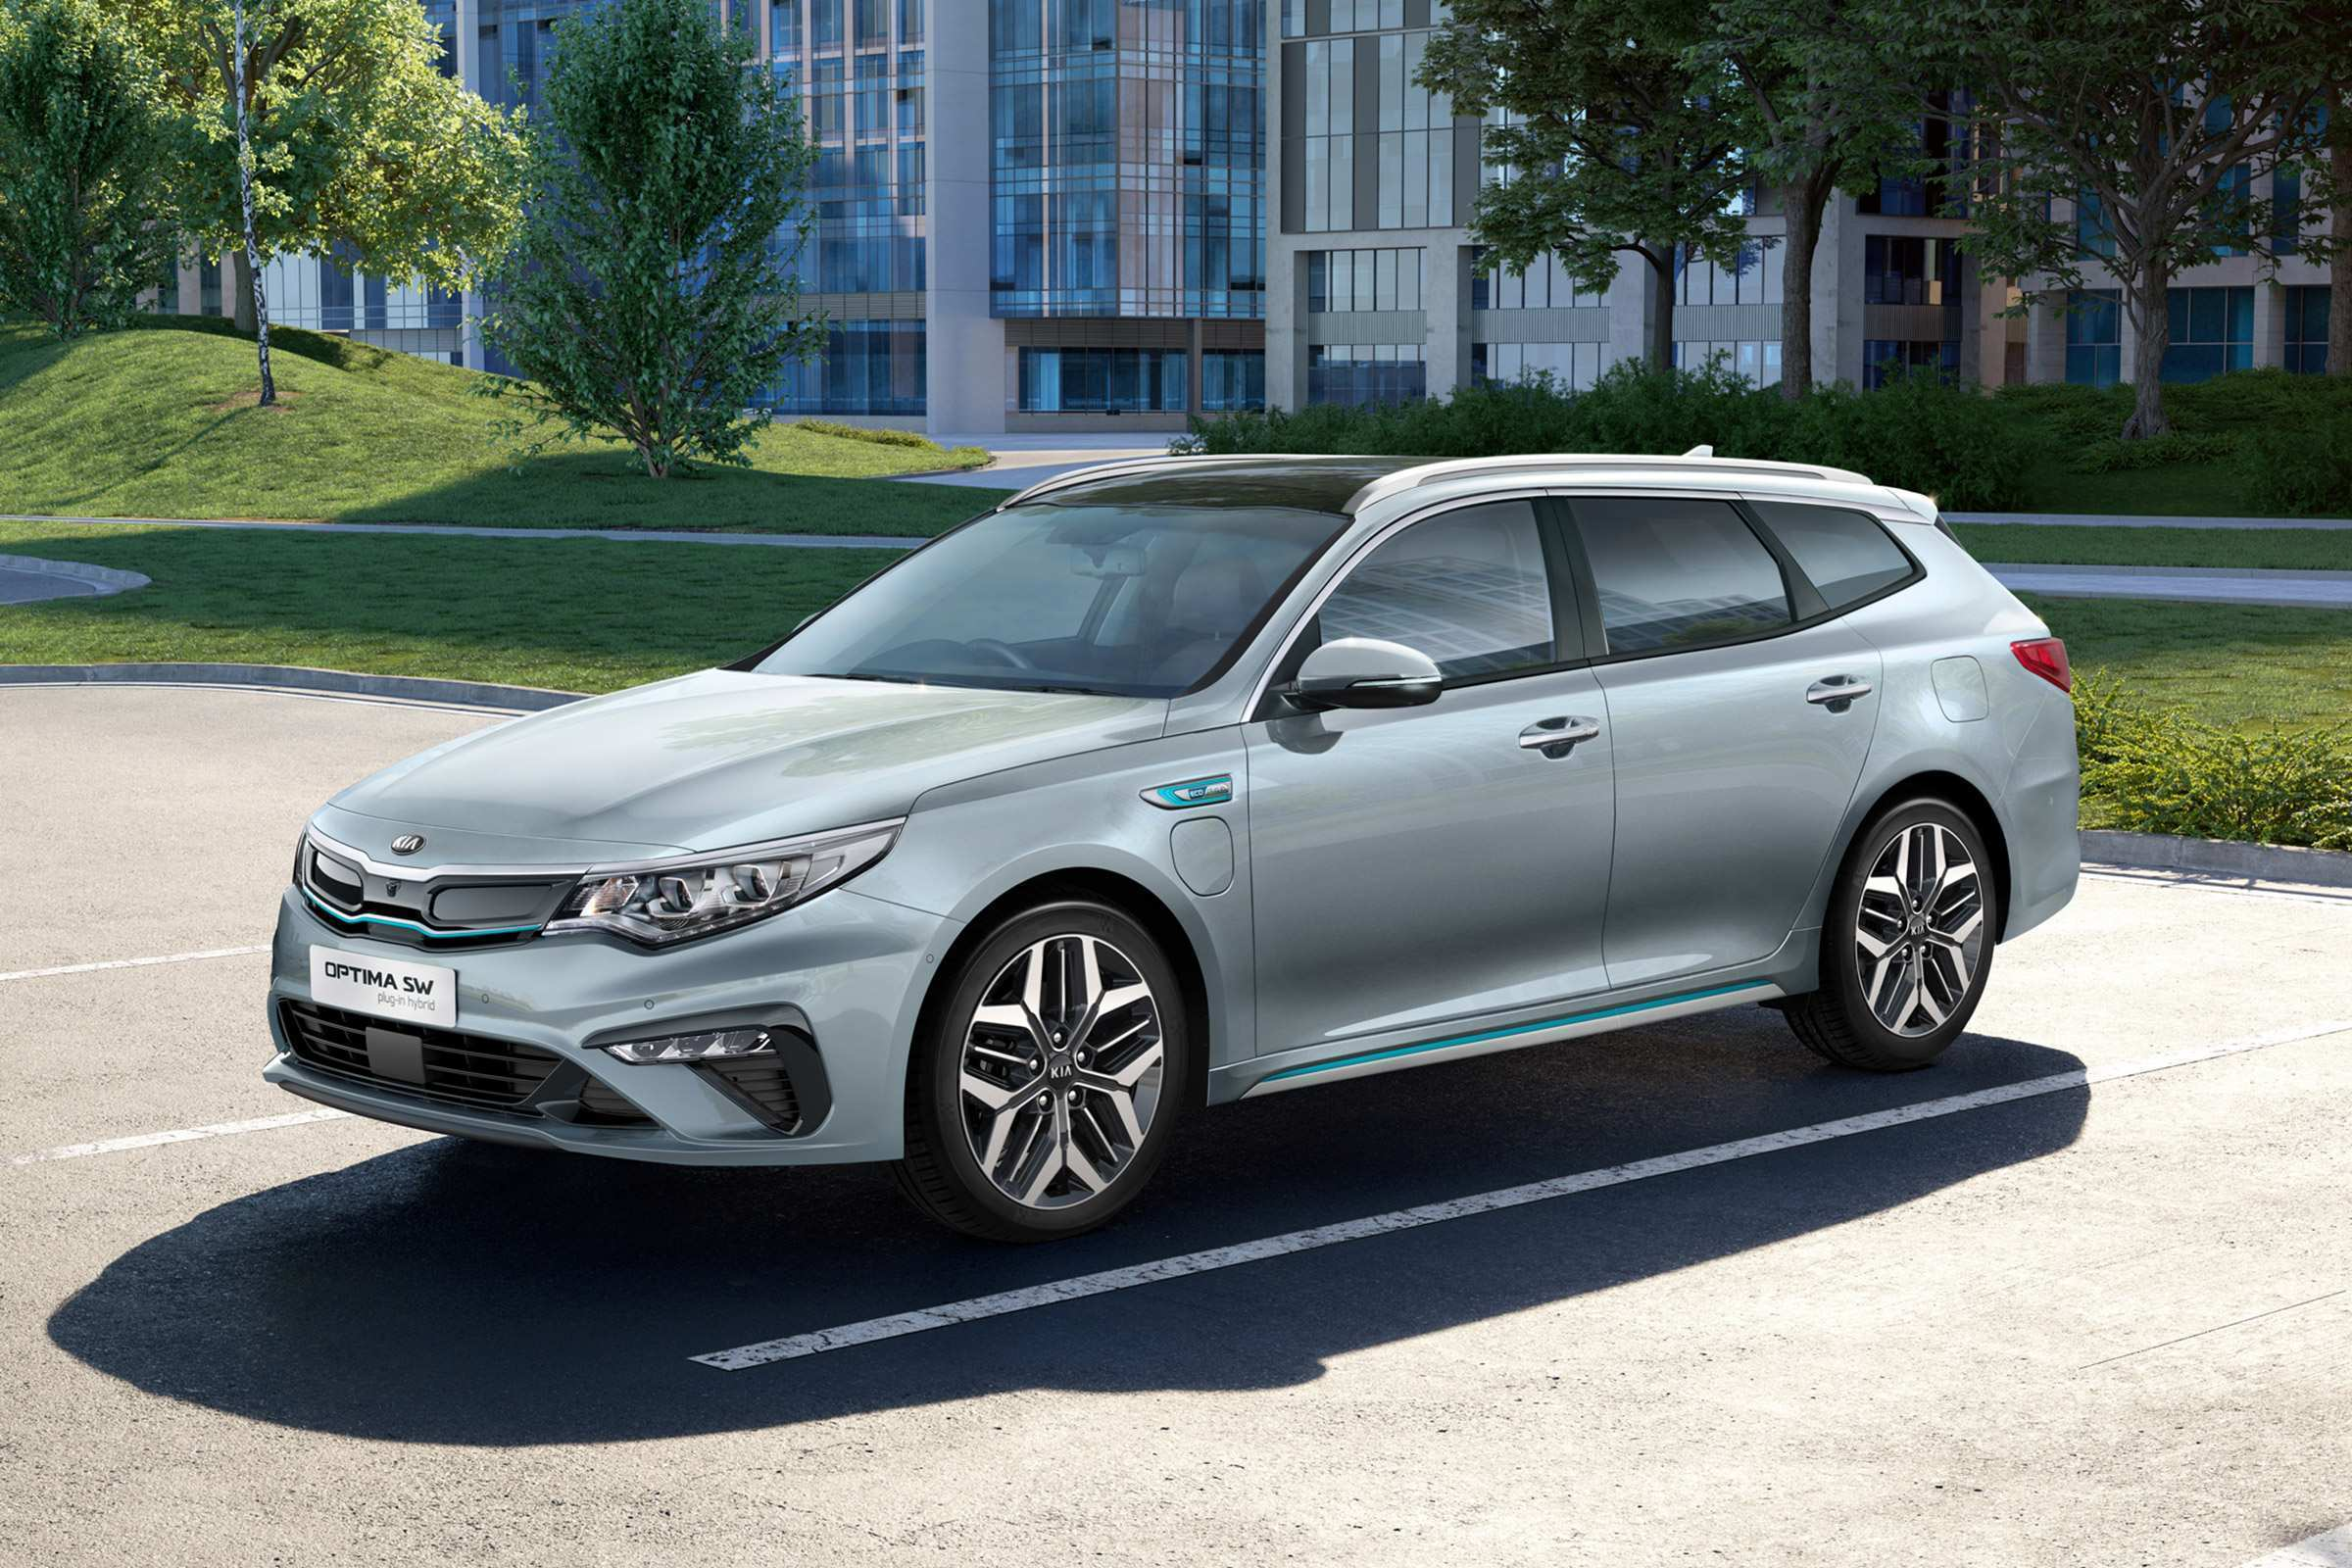 54 The Best 2019 Kia Optima Specs Release